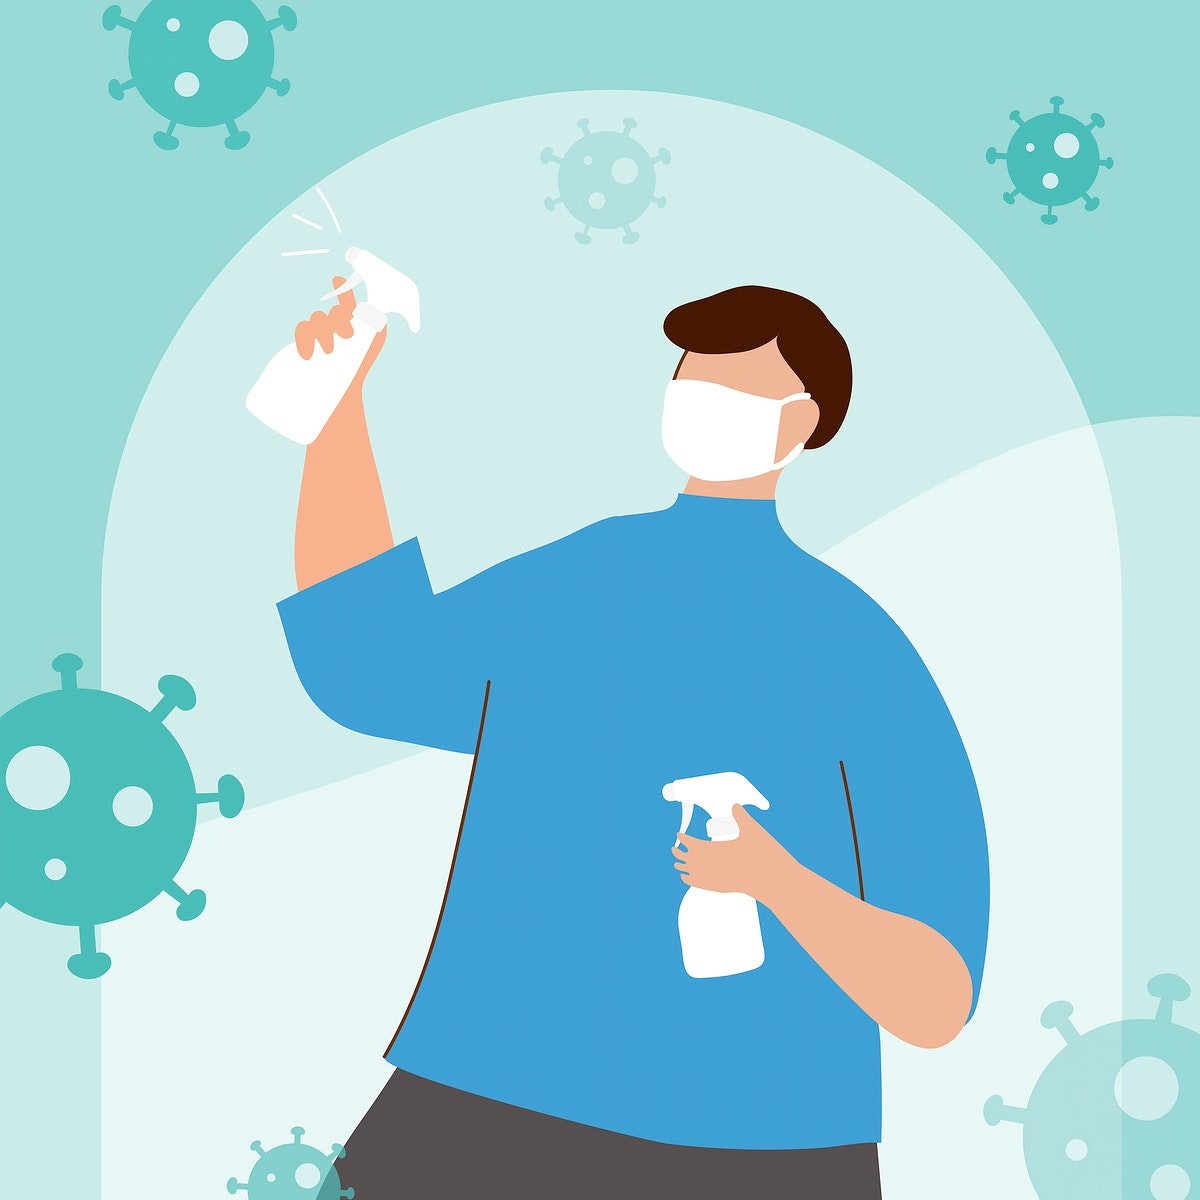 Man spraying alcohol to prevent infection of coronavirus vector